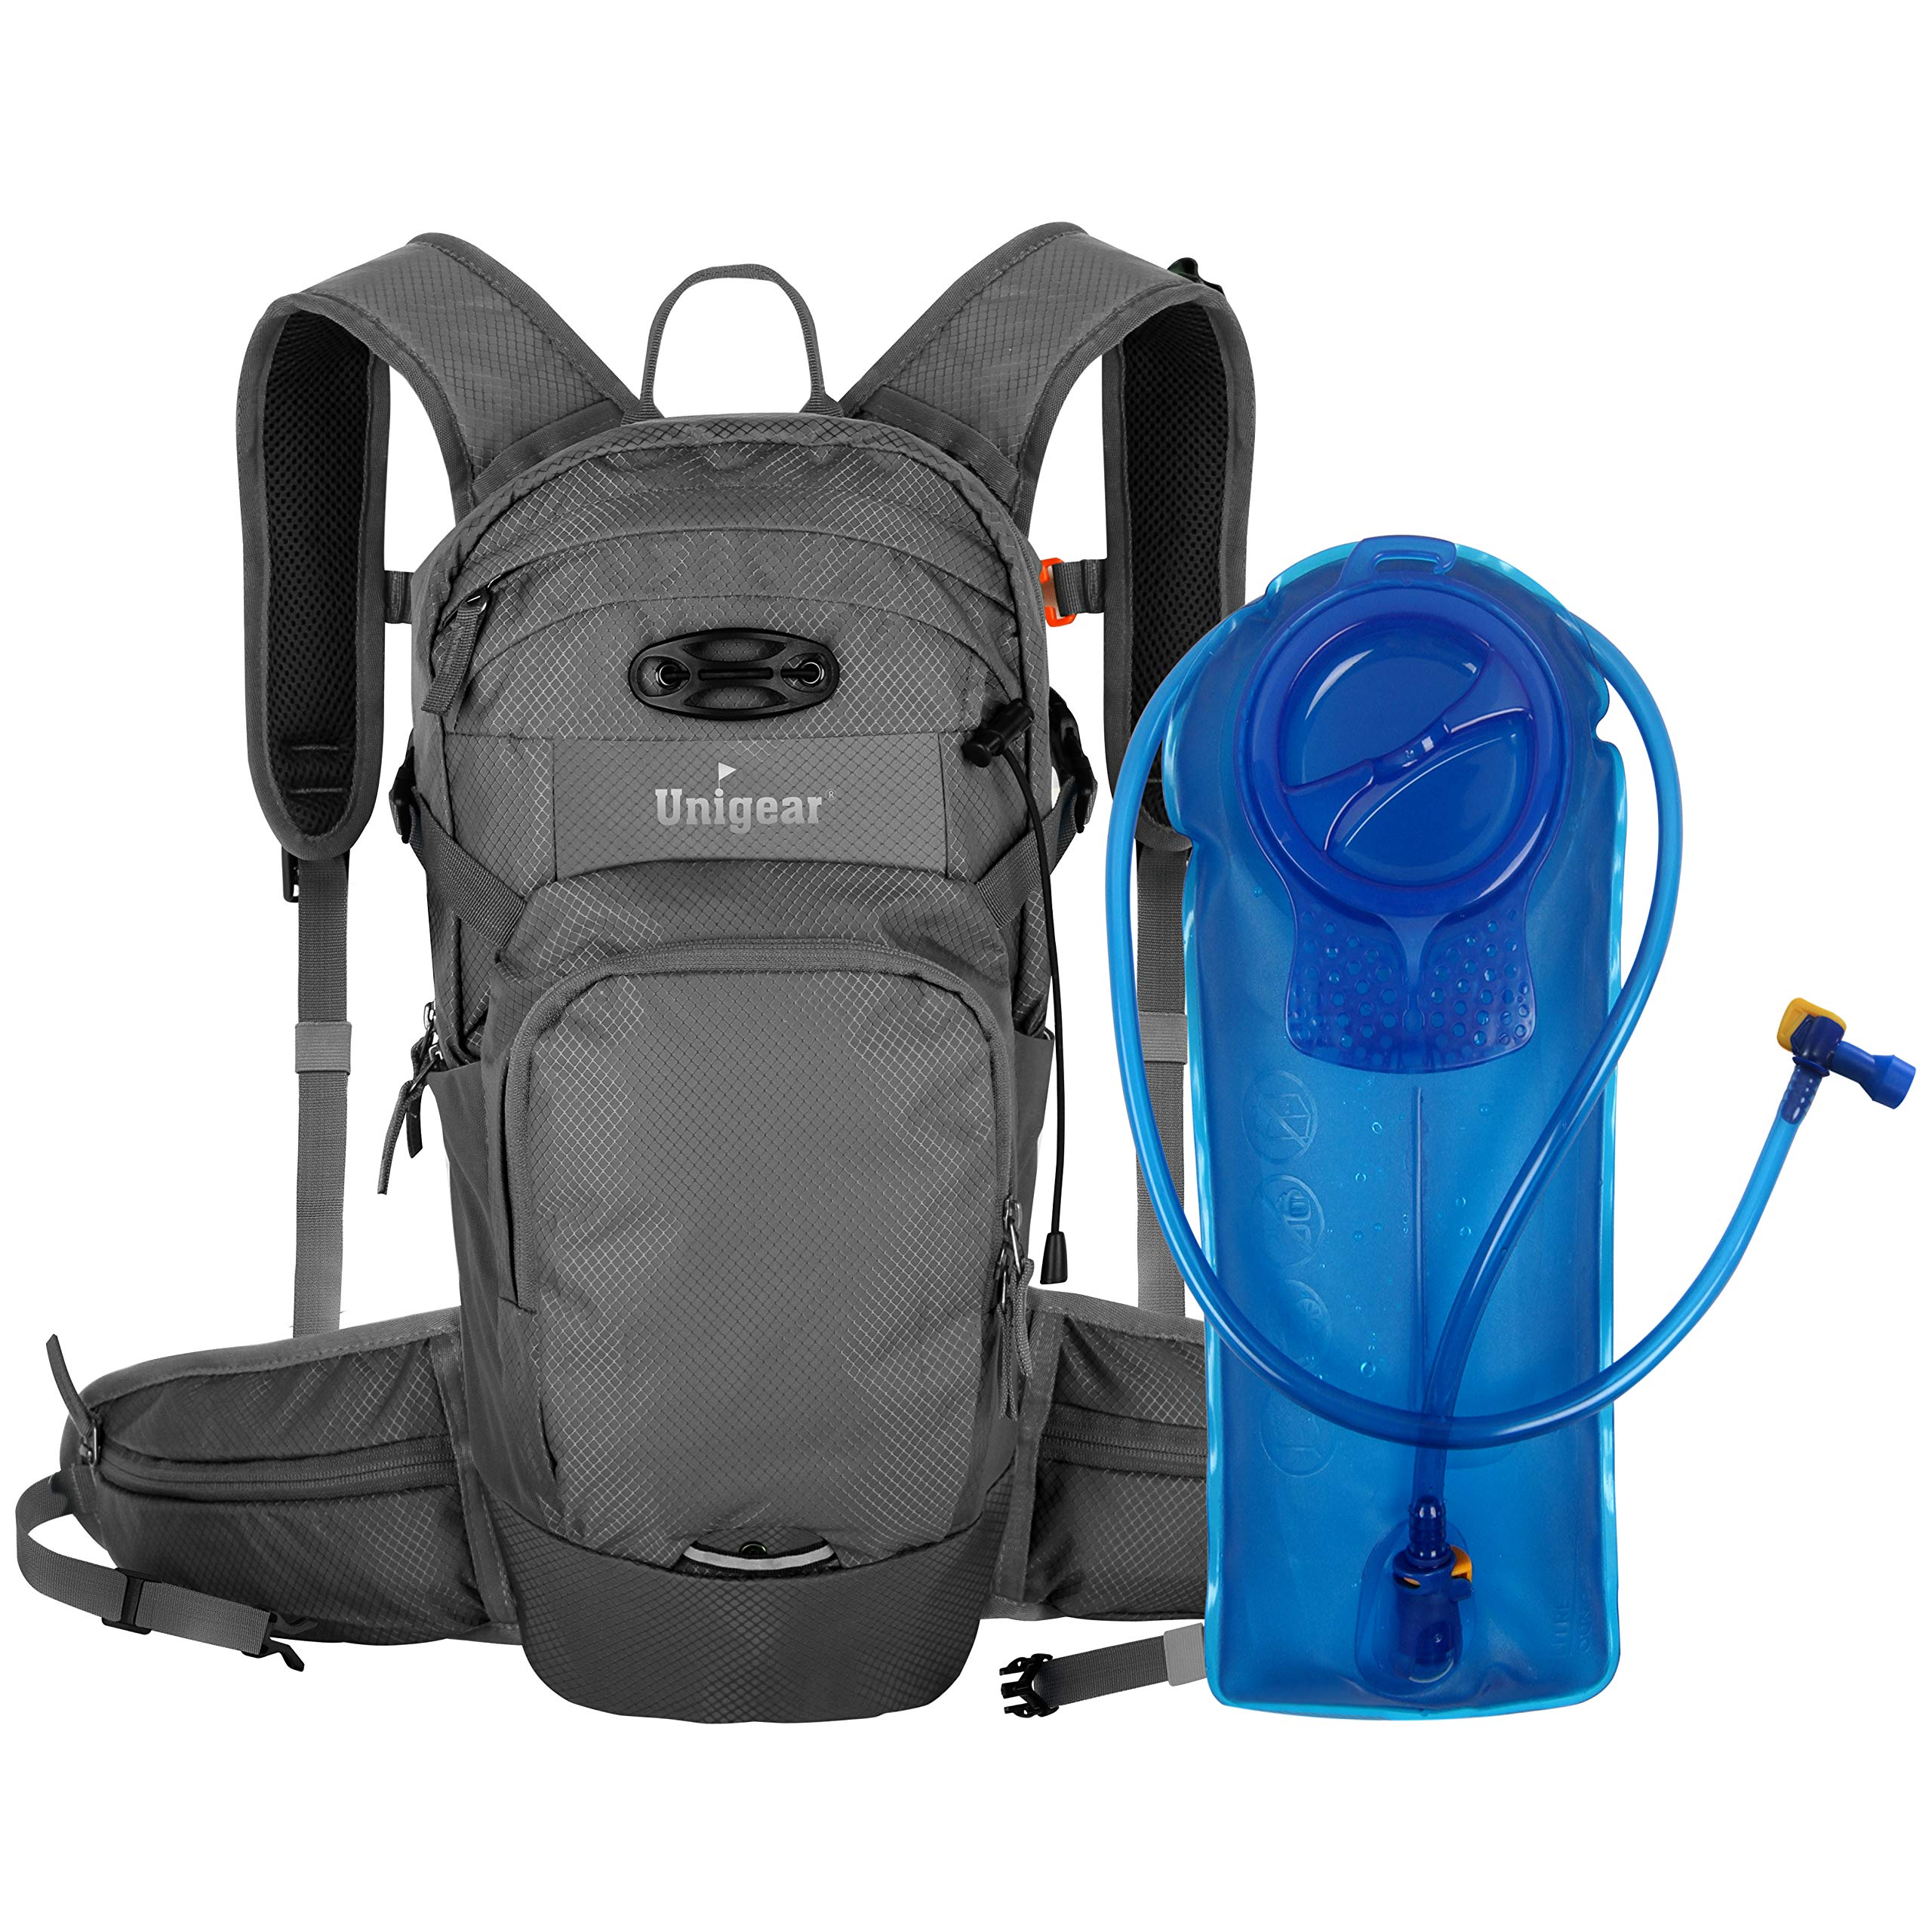 Unigear Hydration Packs Backpack with 2L TPU Water Bladder Reservoir, Thermal Insulation Pack Keeps Liquid Cool up to 4 Hours for Running, Hiking, Climbing, Cycling (Gray)